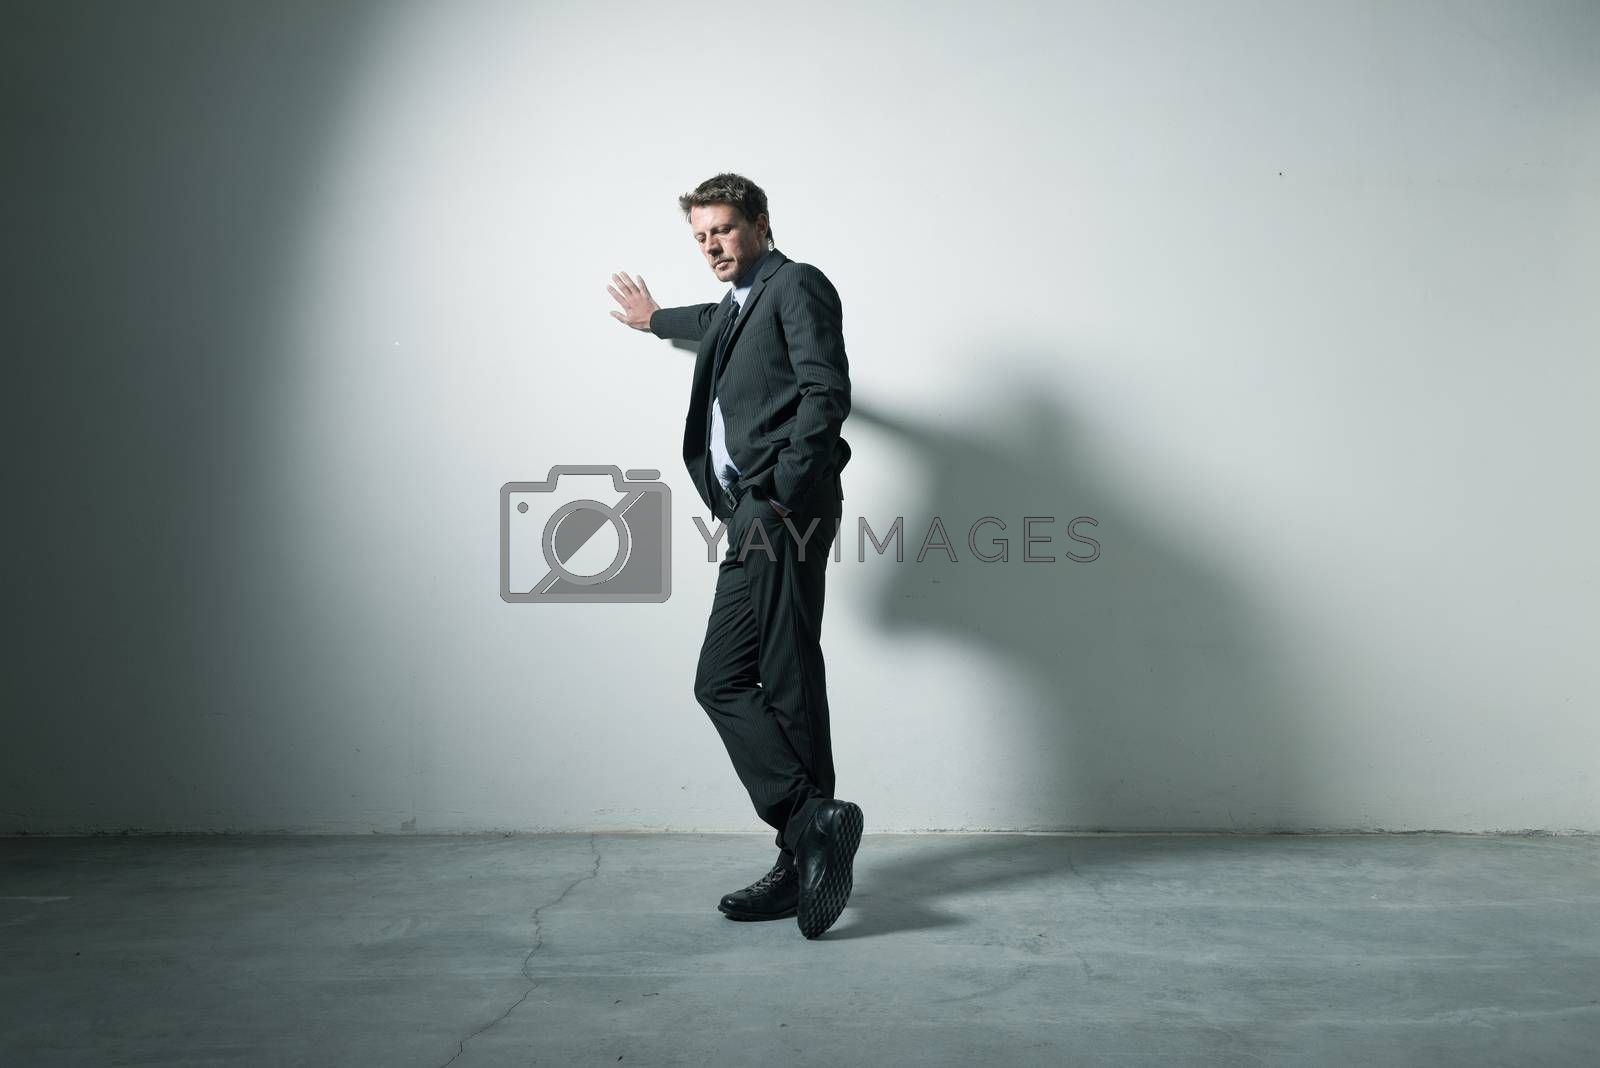 Tired pensive businessman leaning on a wall in an empty room with dramatic lighting.